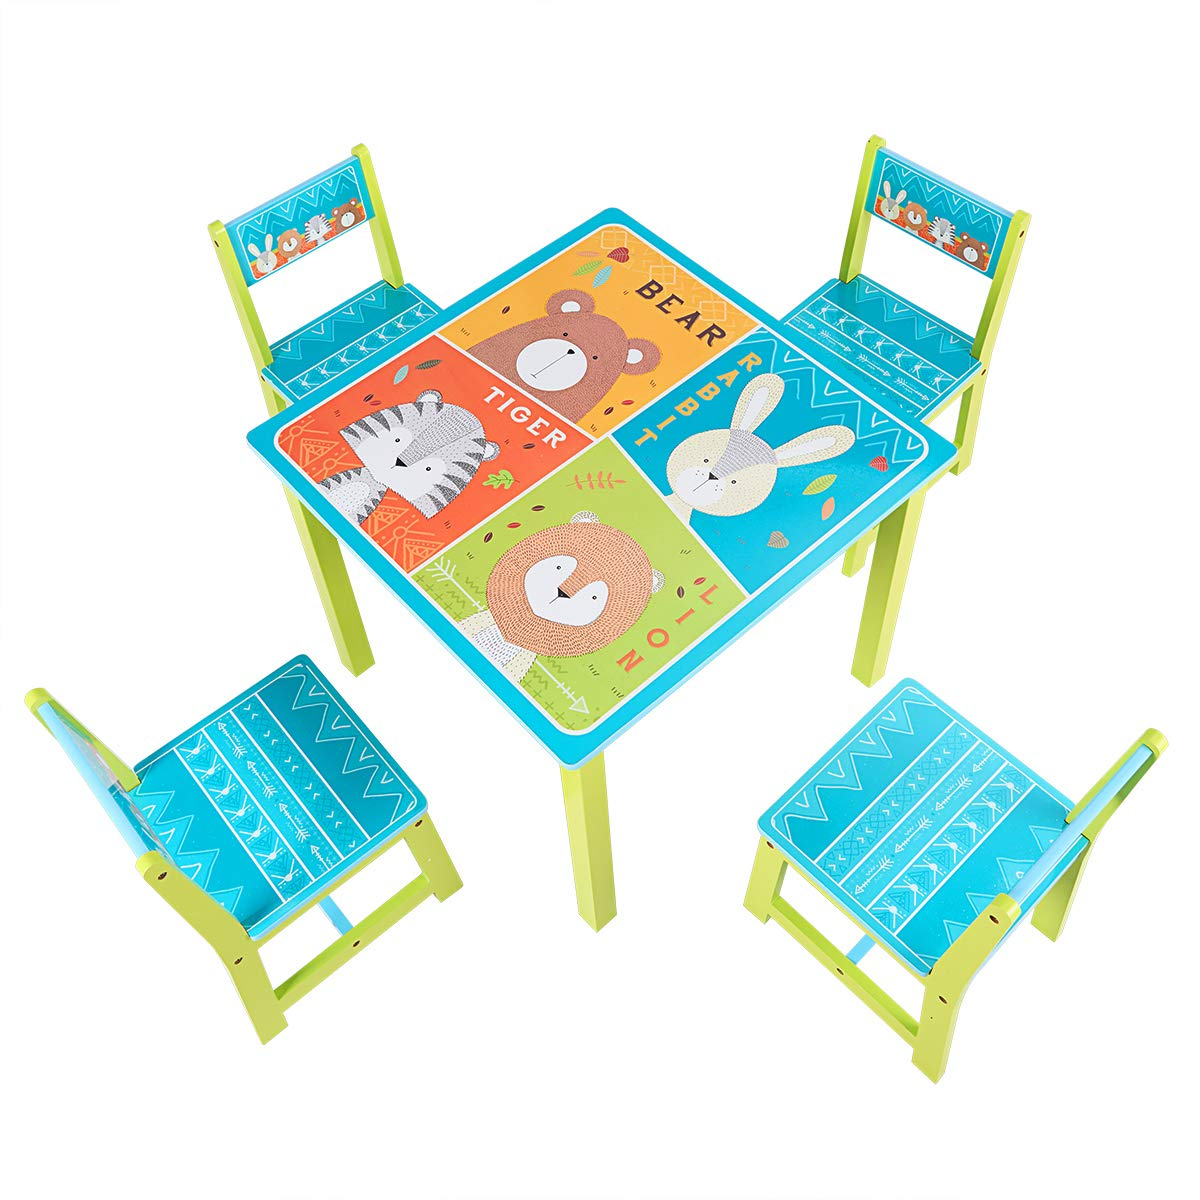 BABY JOY Kids Table and 4 Chairs Set, Wooden MDF Desk for Studying Playing Dining Indoors & Outdoors Activity, Toddler Baby Gift Desk Furniture Cartoon Pattern (Table and 4 Chairs) by BABY JOY (Image #5)